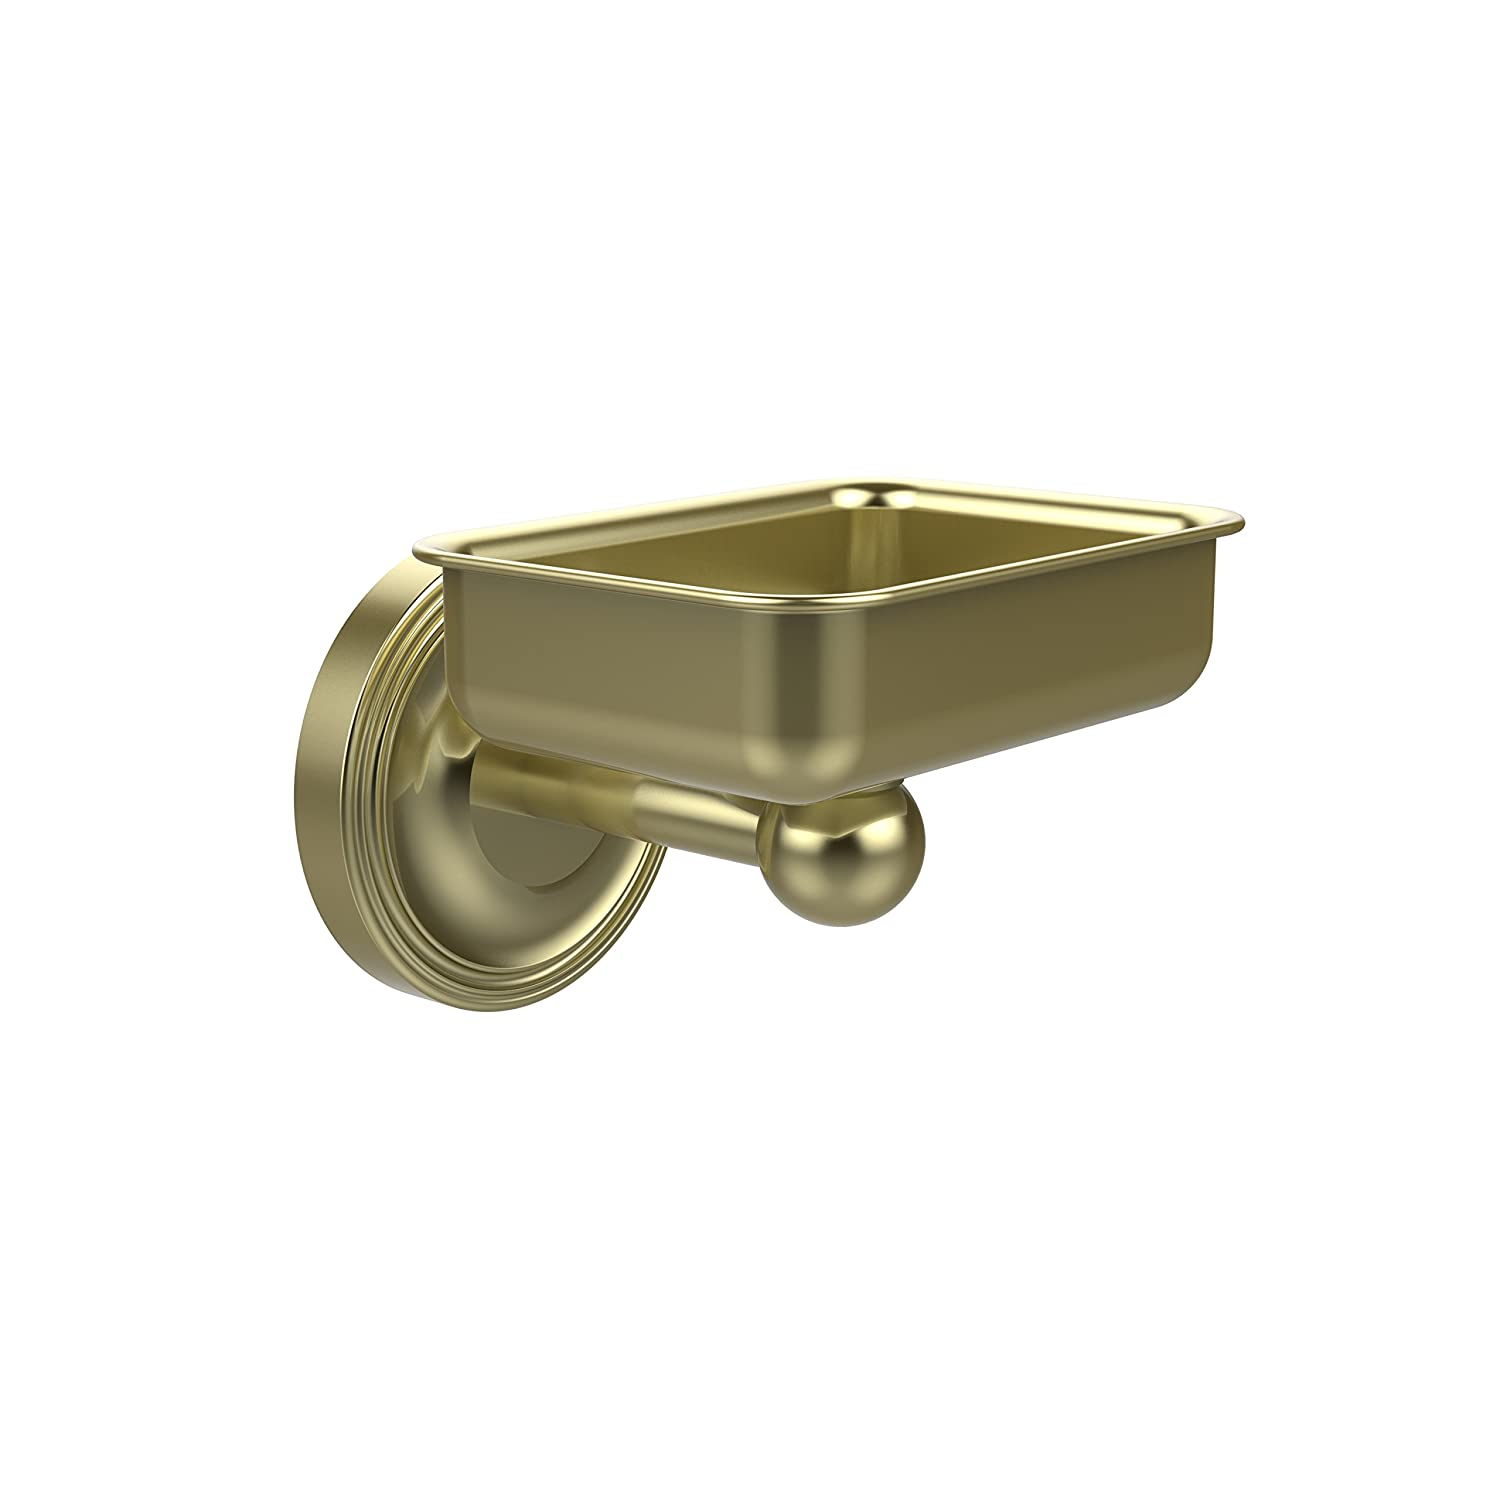 Allied Brass R-WG2-PB Regal Collection Wall Mounted Soap Dish Polished Brass